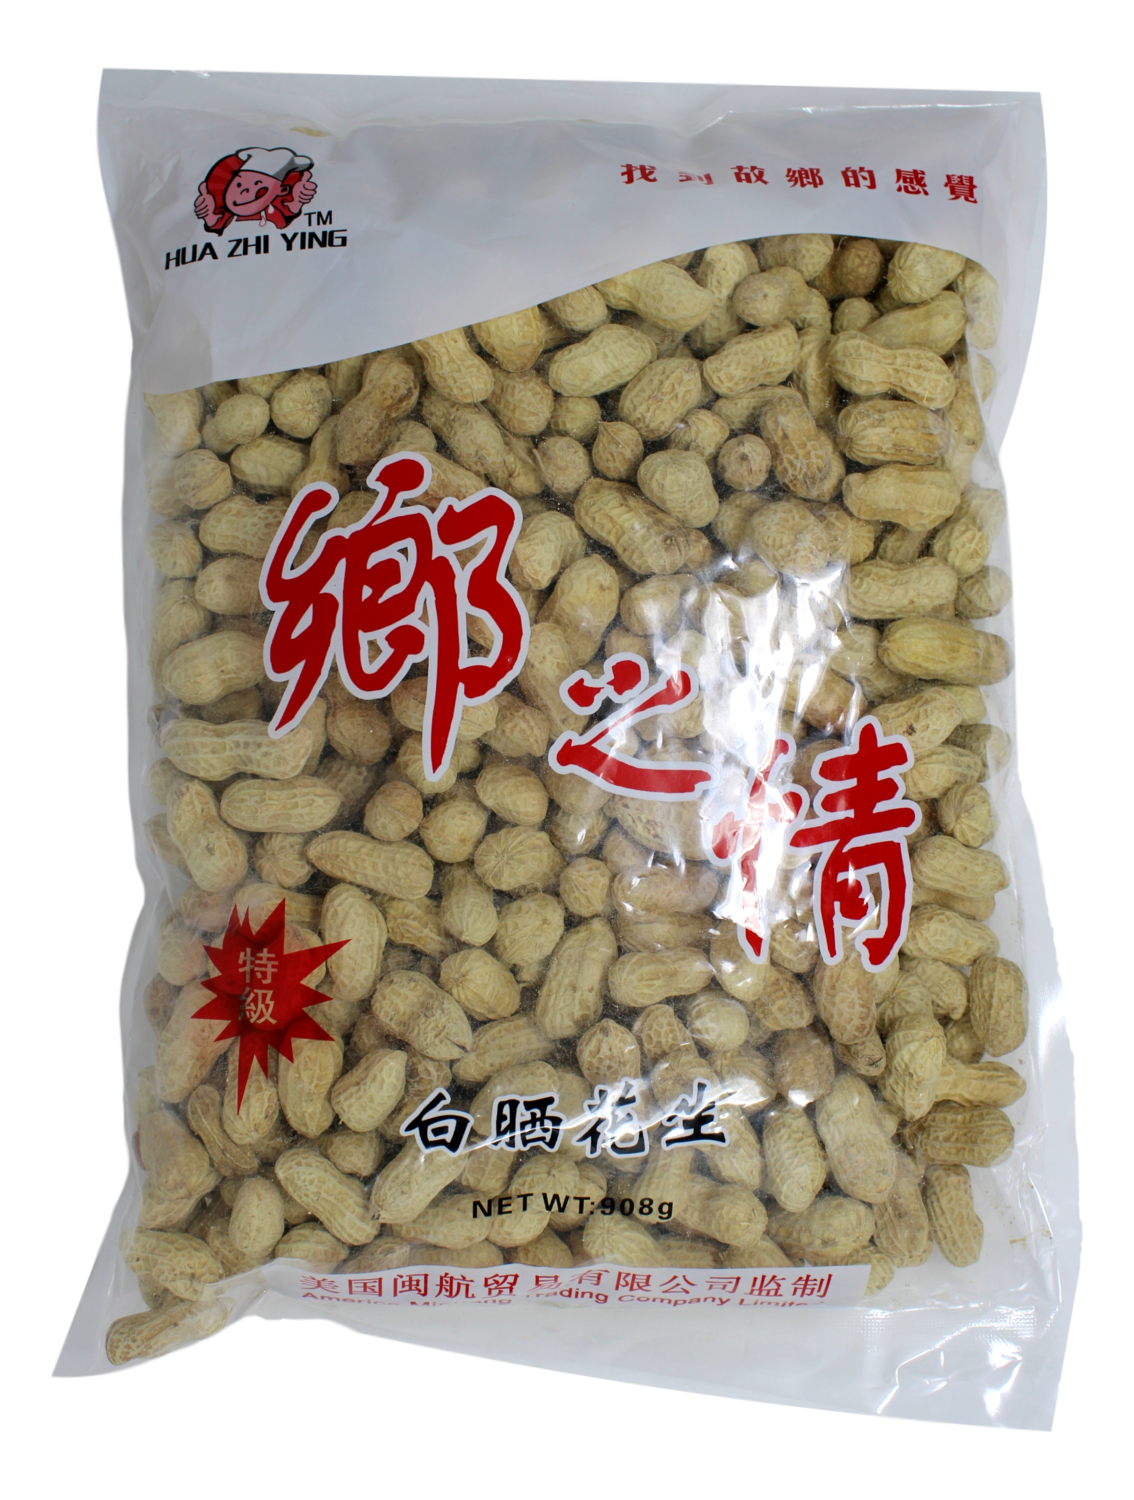 HUAZHIYING WHITE PEANUT  华之鹰 白晒花生